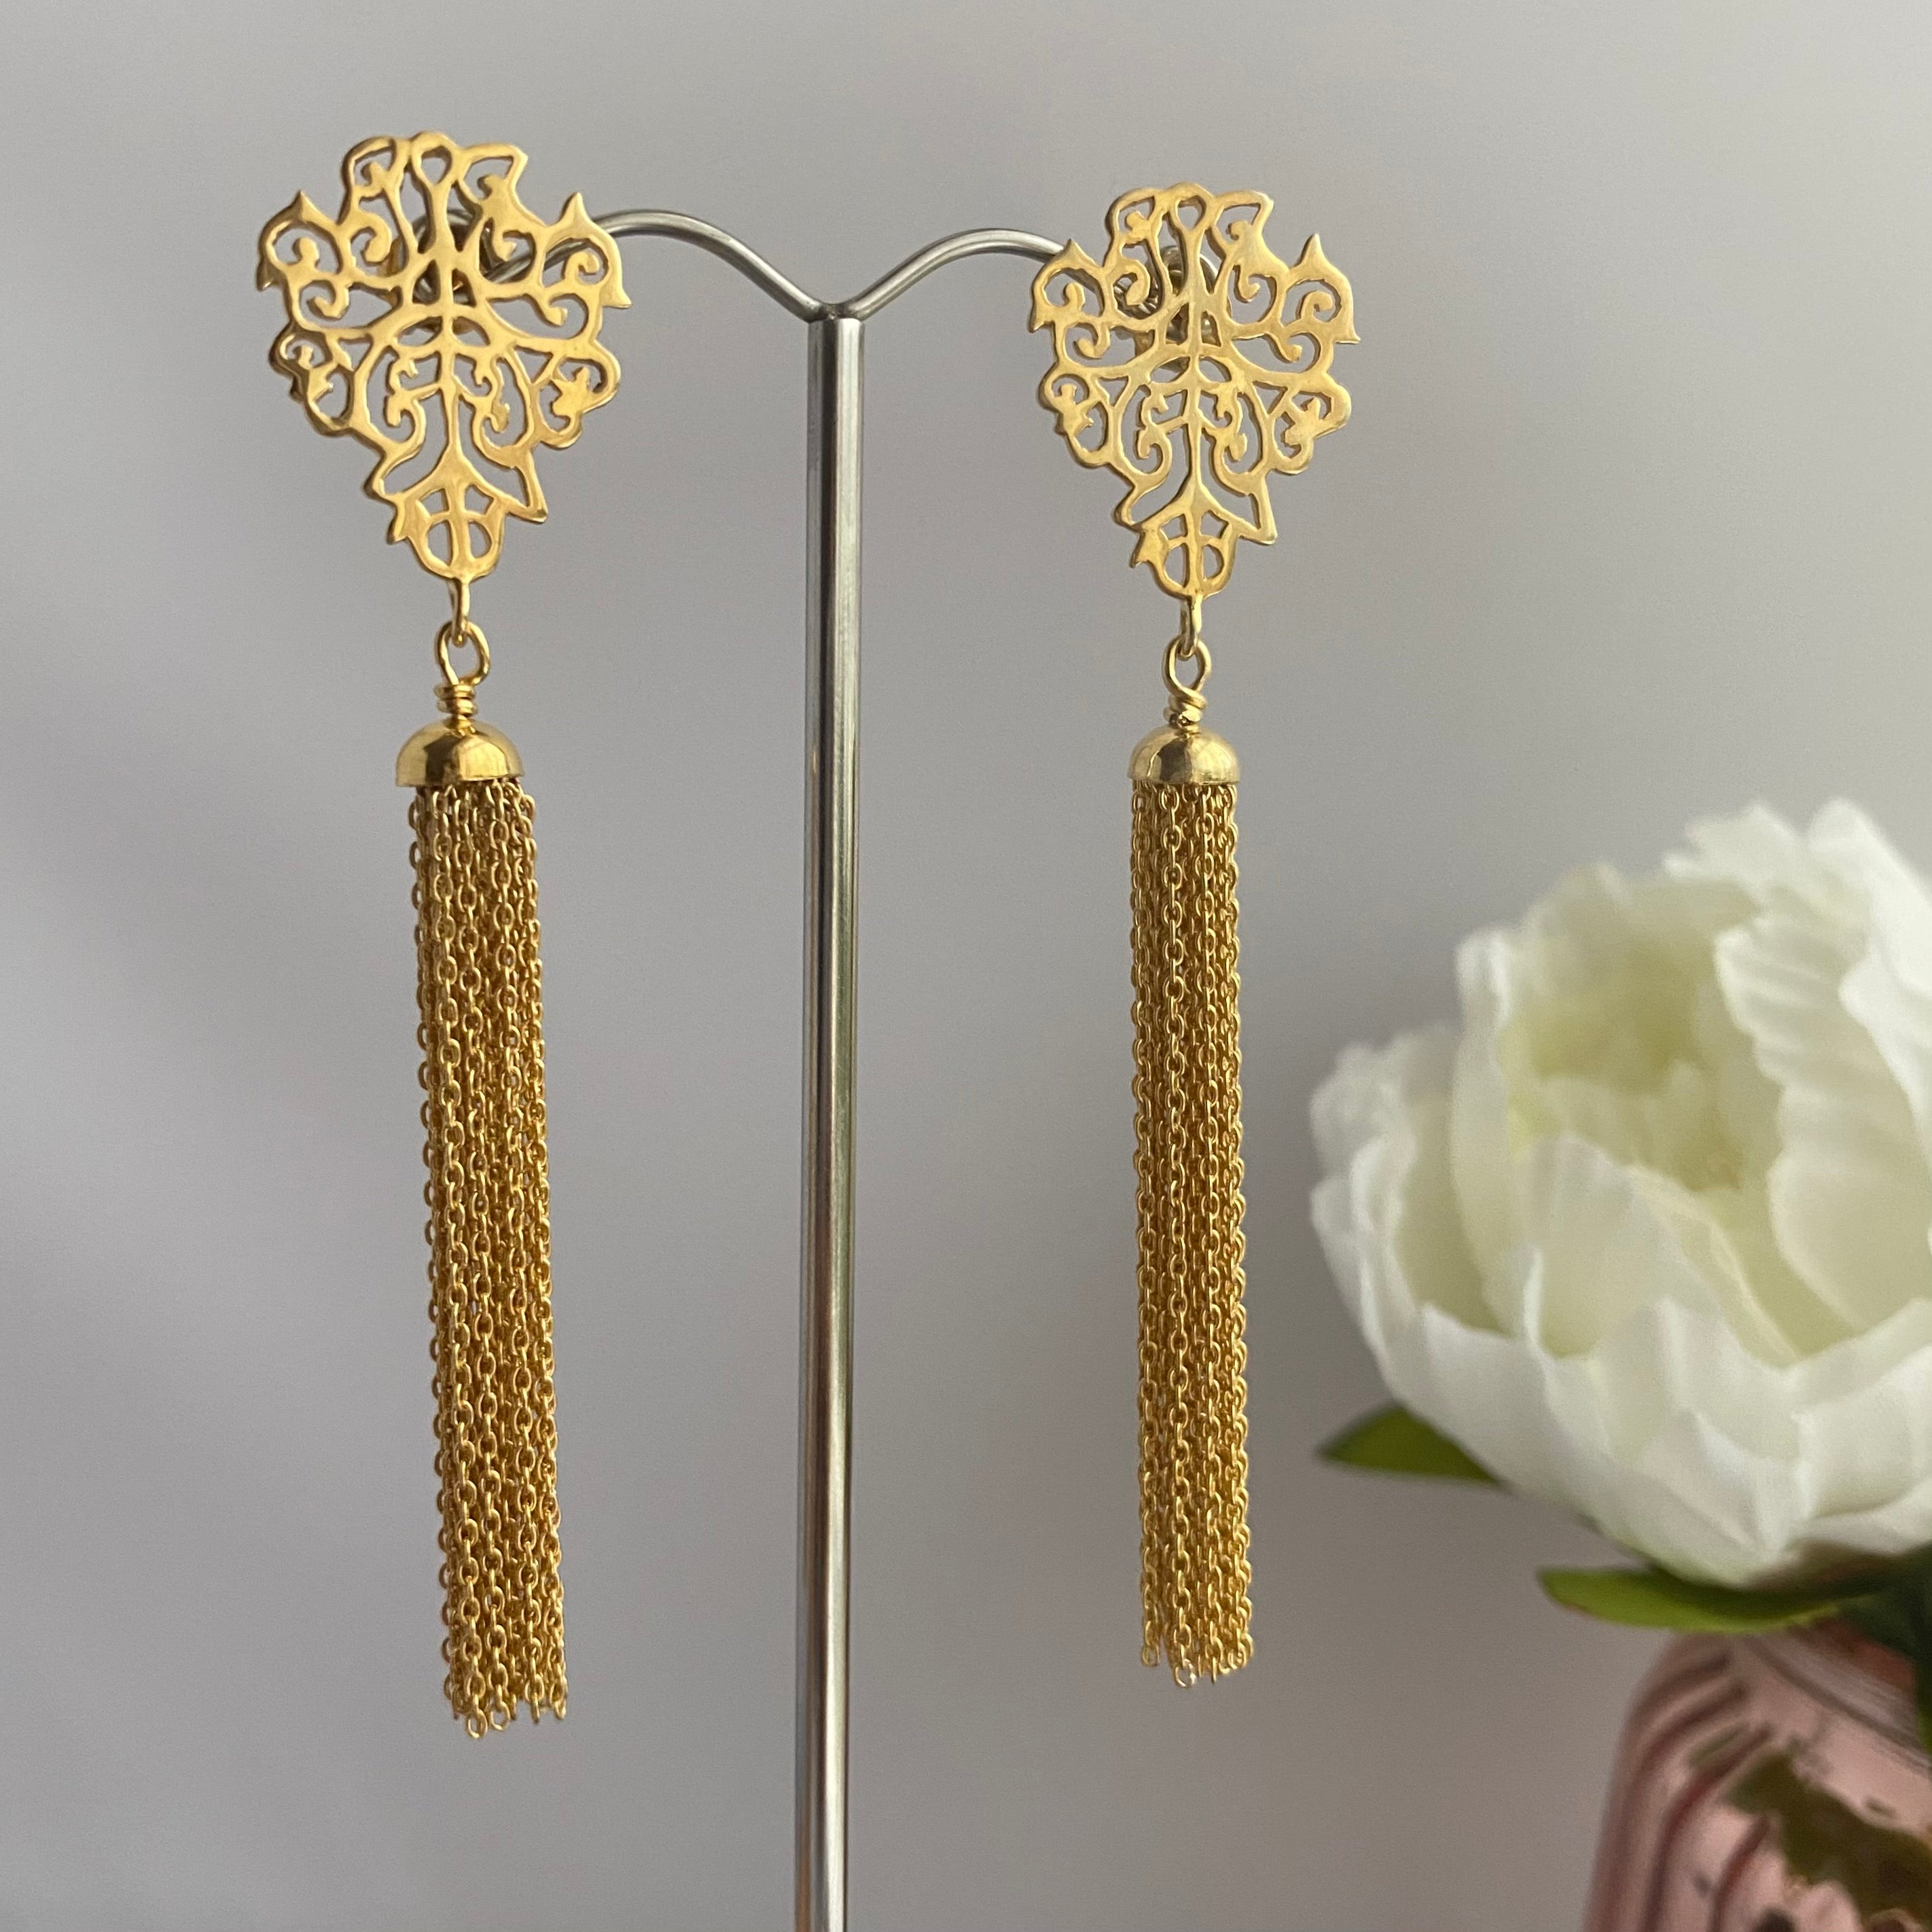 Gold Plated Sterling Silver Intricate Filigree Long Earrings with Tassels